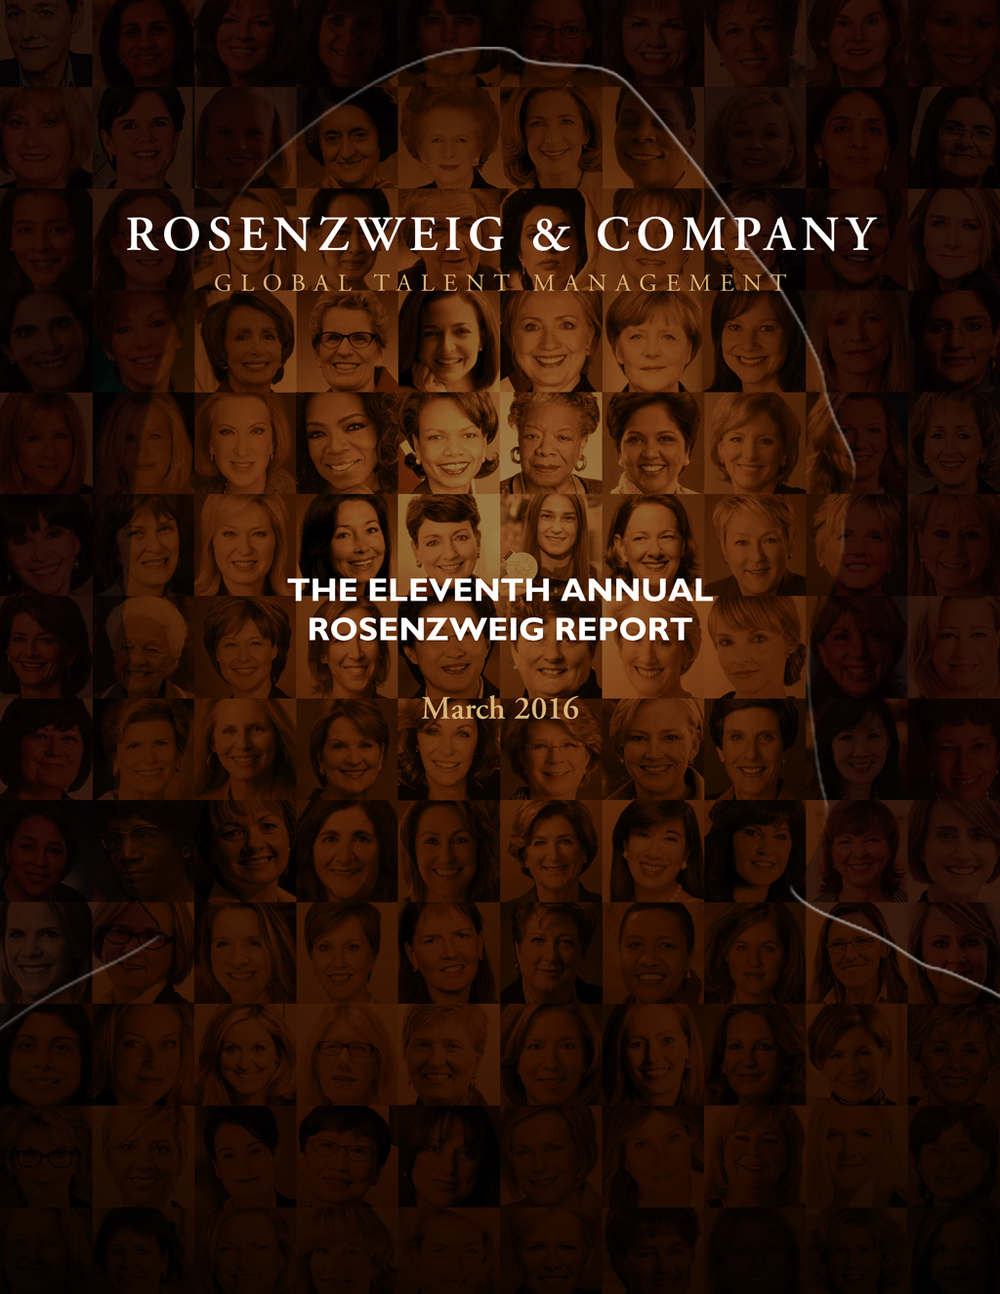 The Annual Rosenzweig Report on Women at the Top Levels of Corporate Canada looks at the 100 largest publicly-traded companies in Canada, based on revenue, and examines how many of the top-paid leadership roles are held by women.